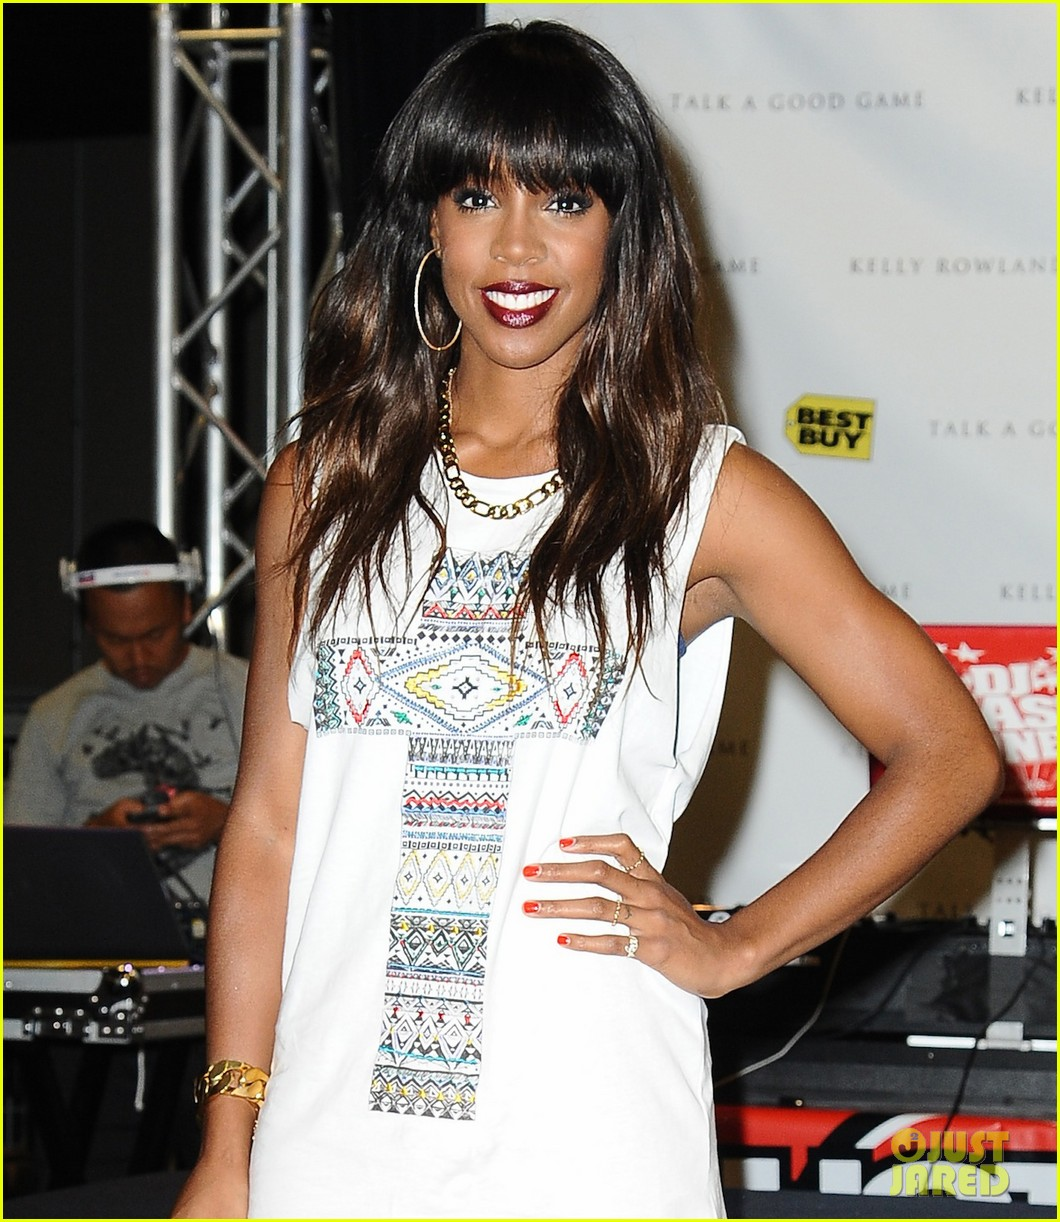 kelly rowland talk a good game nyc album signing 10